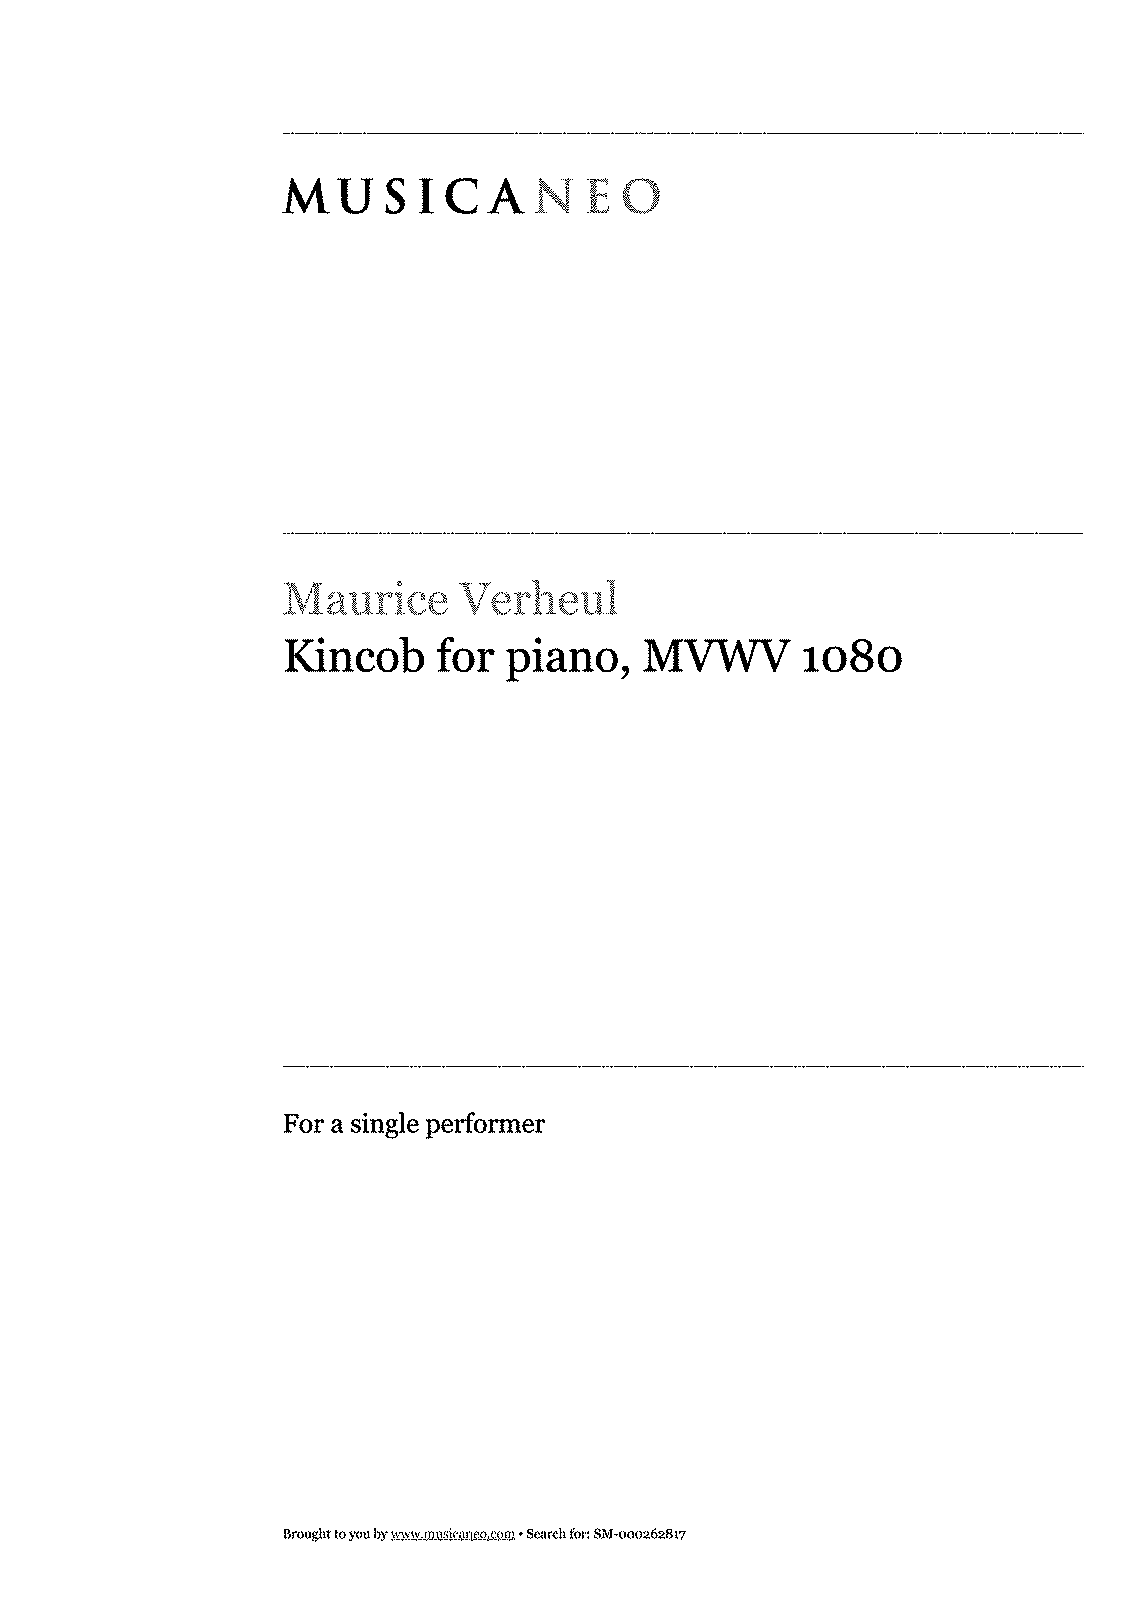 PMLP719284-kincob for piano mvwv 1080.pdf